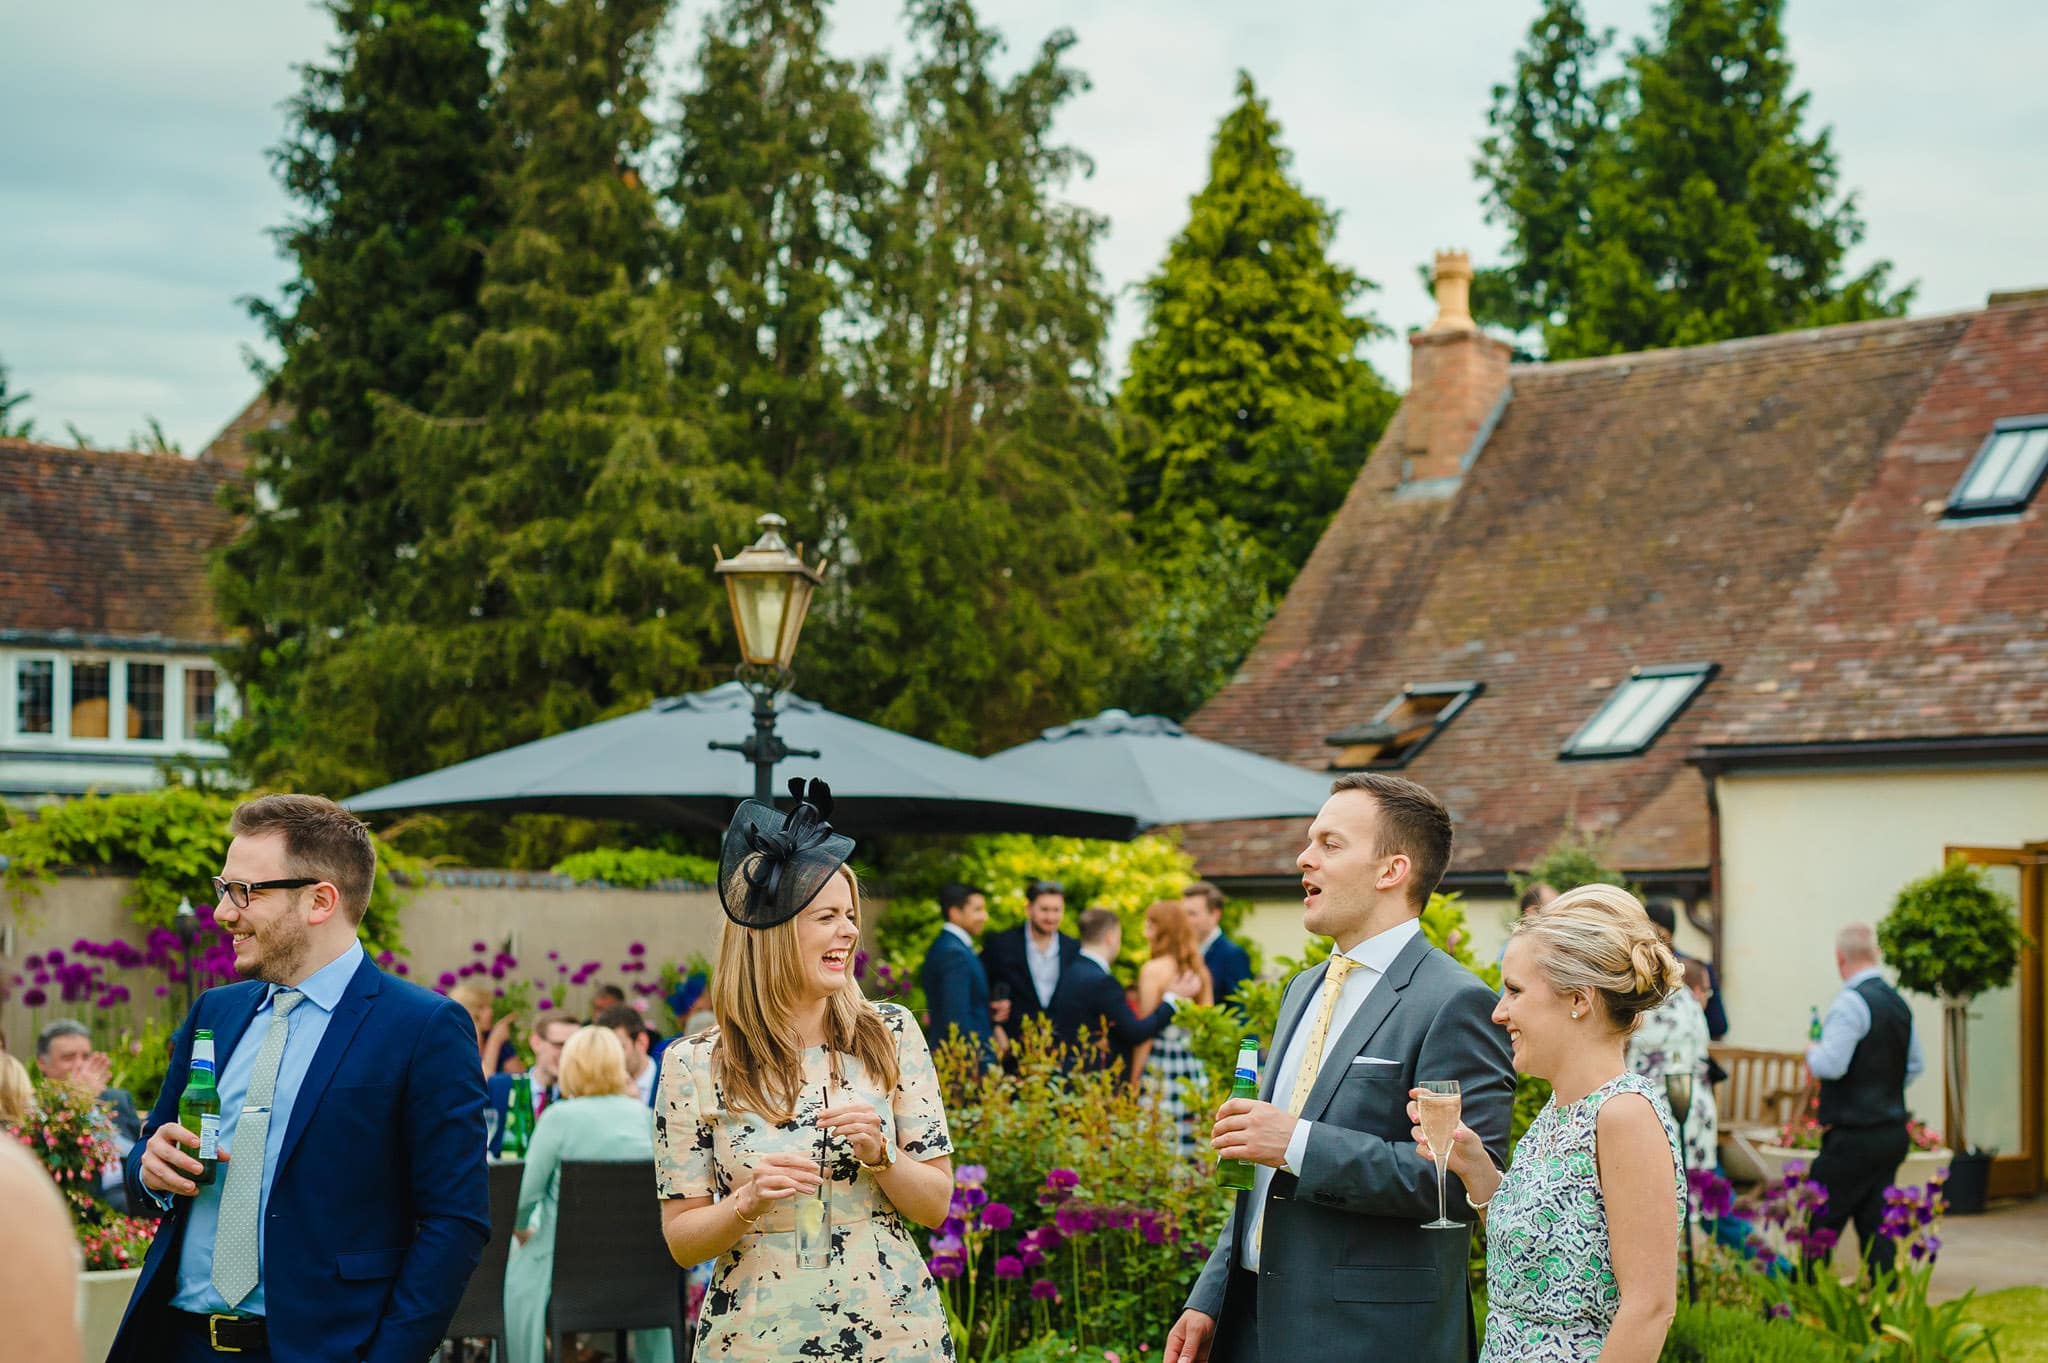 Wedding at Redhouse Barn in Stoke Prior, Worcestershire 184